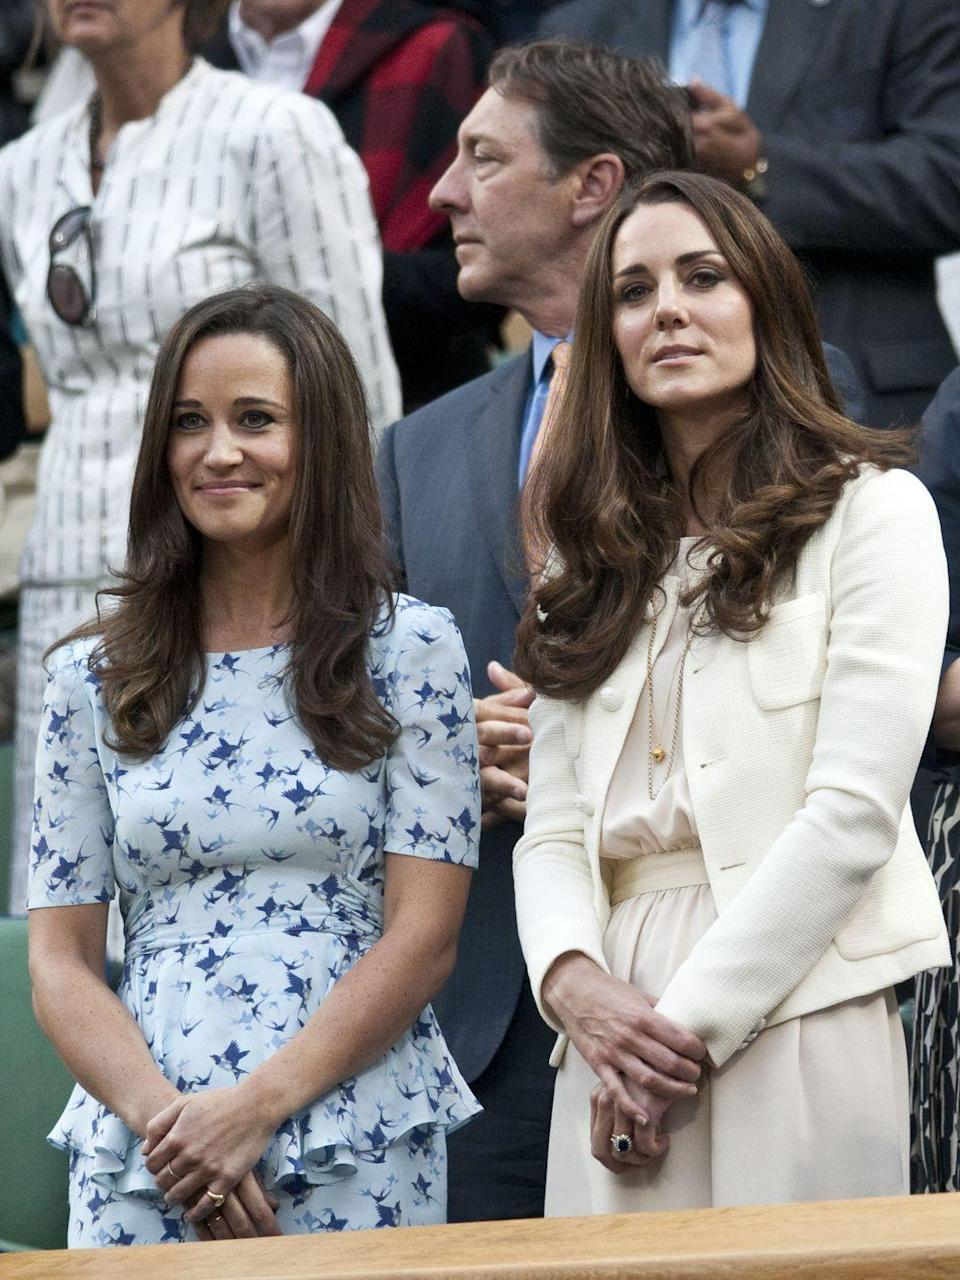 "<p>Pippa Middleton was thrown into the spotlight after serving as her sister's maid of honor in the 2011 royal wedding. Although the Middleton sisters have always closely resembled one another, Pippa has picked up on some royal styling cues from her big sis in recent years. </p><p><strong>RELATED</strong>: <a href=""https://www.goodhousekeeping.com/life/a44219/kate-and-pippa-middleton-relationship/"" rel=""nofollow noopener"" target=""_blank"" data-ylk=""slk:6 Things You Didn't Know About Kate and Pippa Middleton's Relationship"" class=""link rapid-noclick-resp"">6 Things You Didn't Know About Kate and Pippa Middleton's Relationship</a></p>"